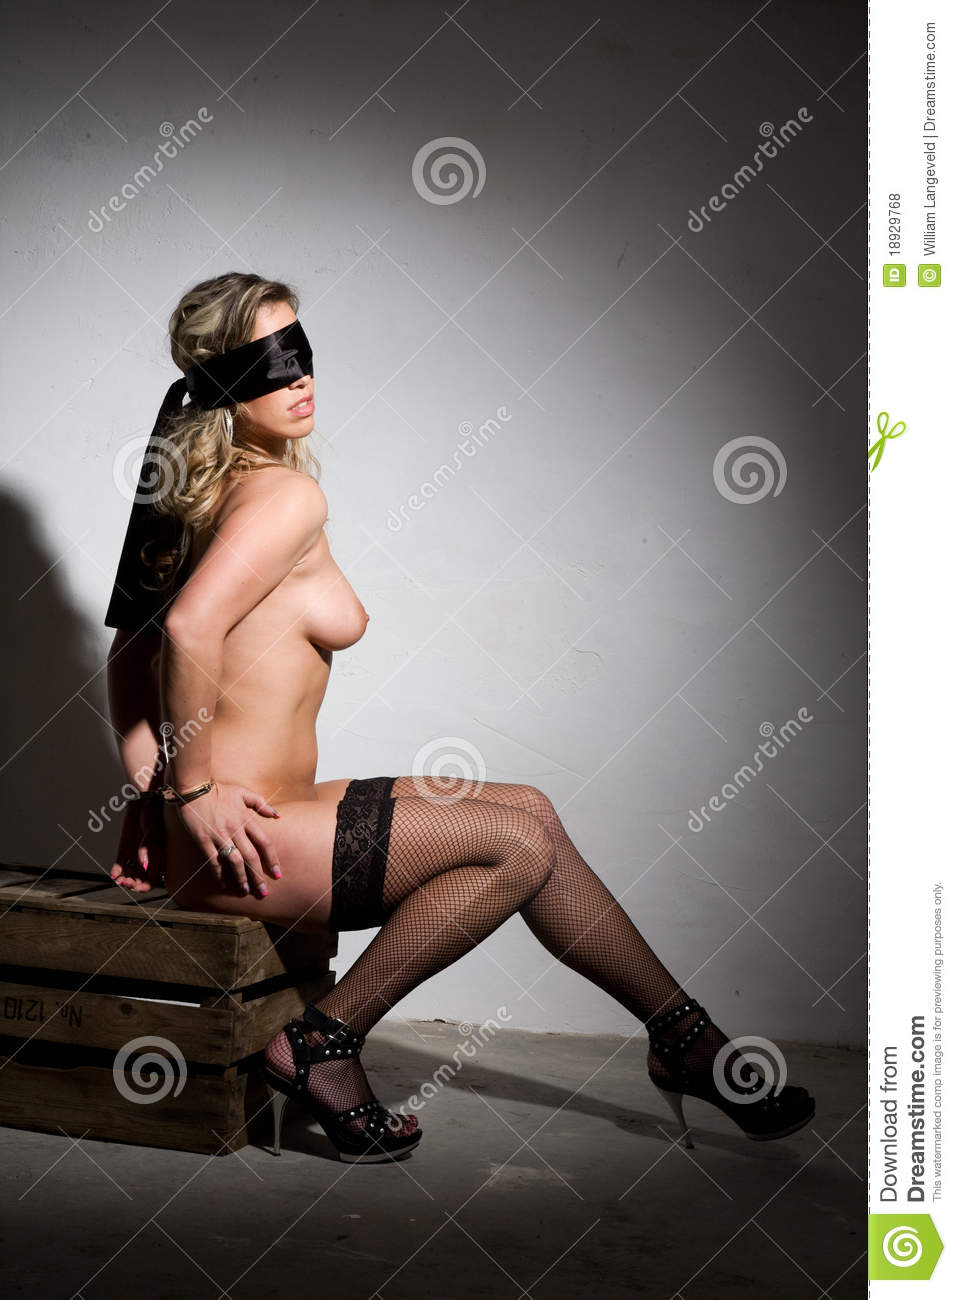 free bound blindfolded bondage